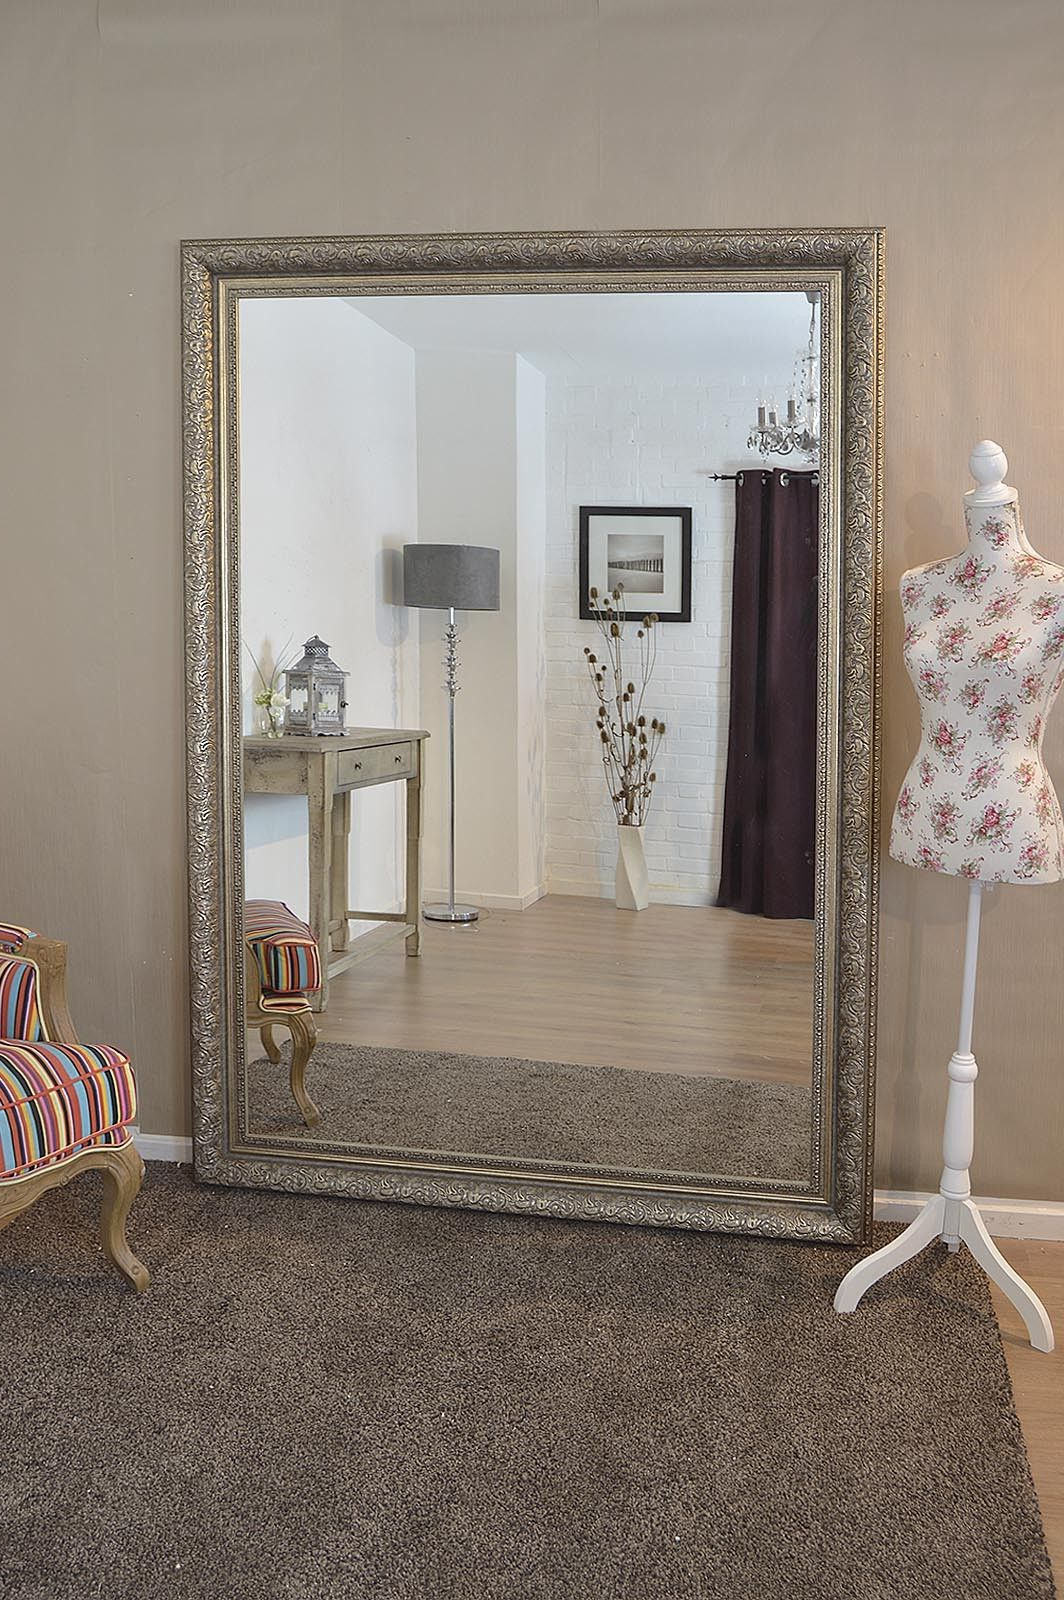 Big Decorative Wall Mirrors Throughout Popular Large Silver Ornate Decorative Big Wall Mirror 7ft X 5ft (208cm X (View 15 of 20)